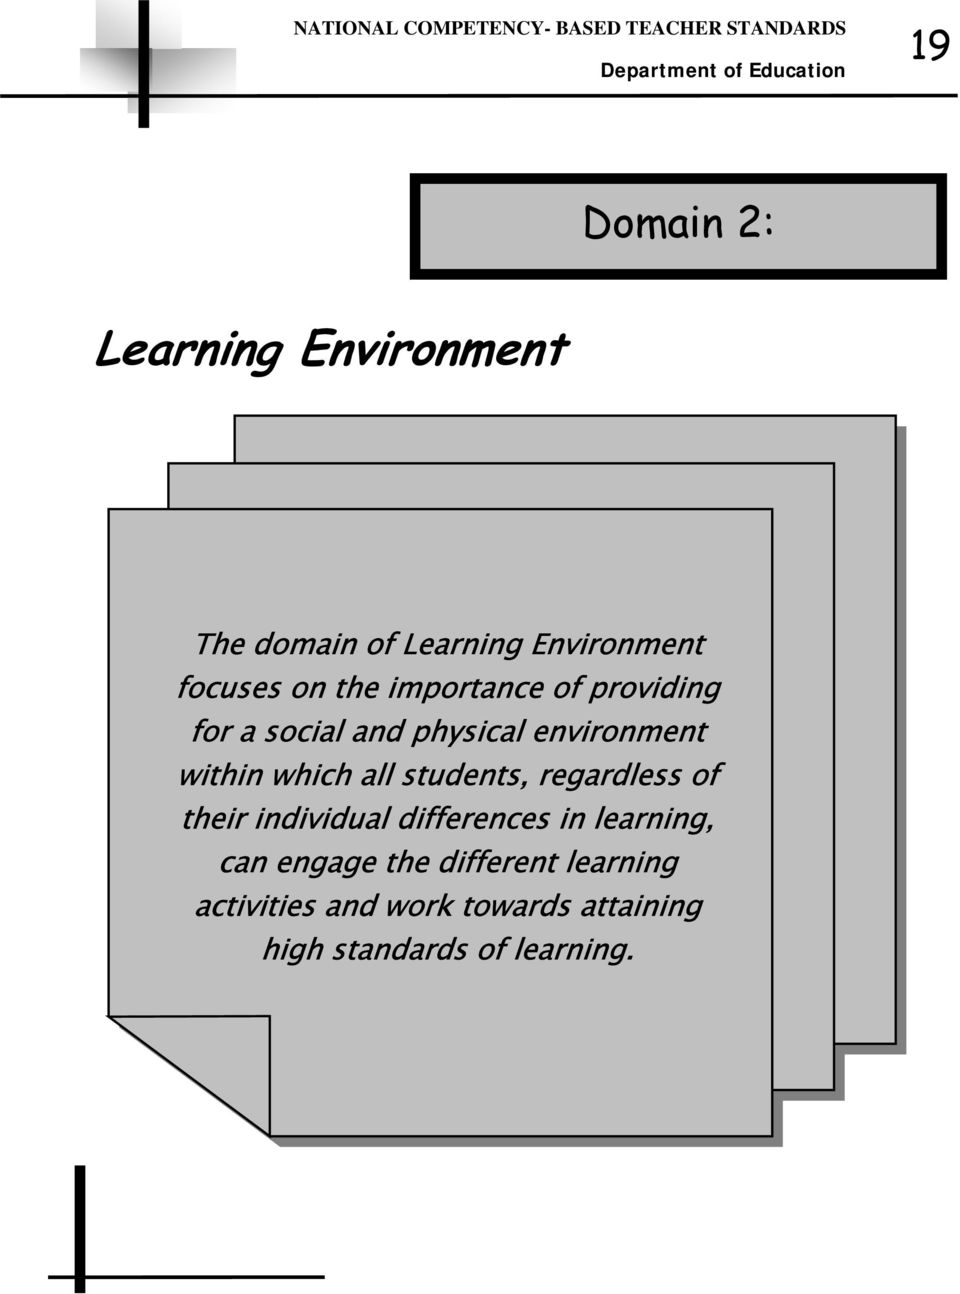 environment within which all students, regardless of their individual differences in